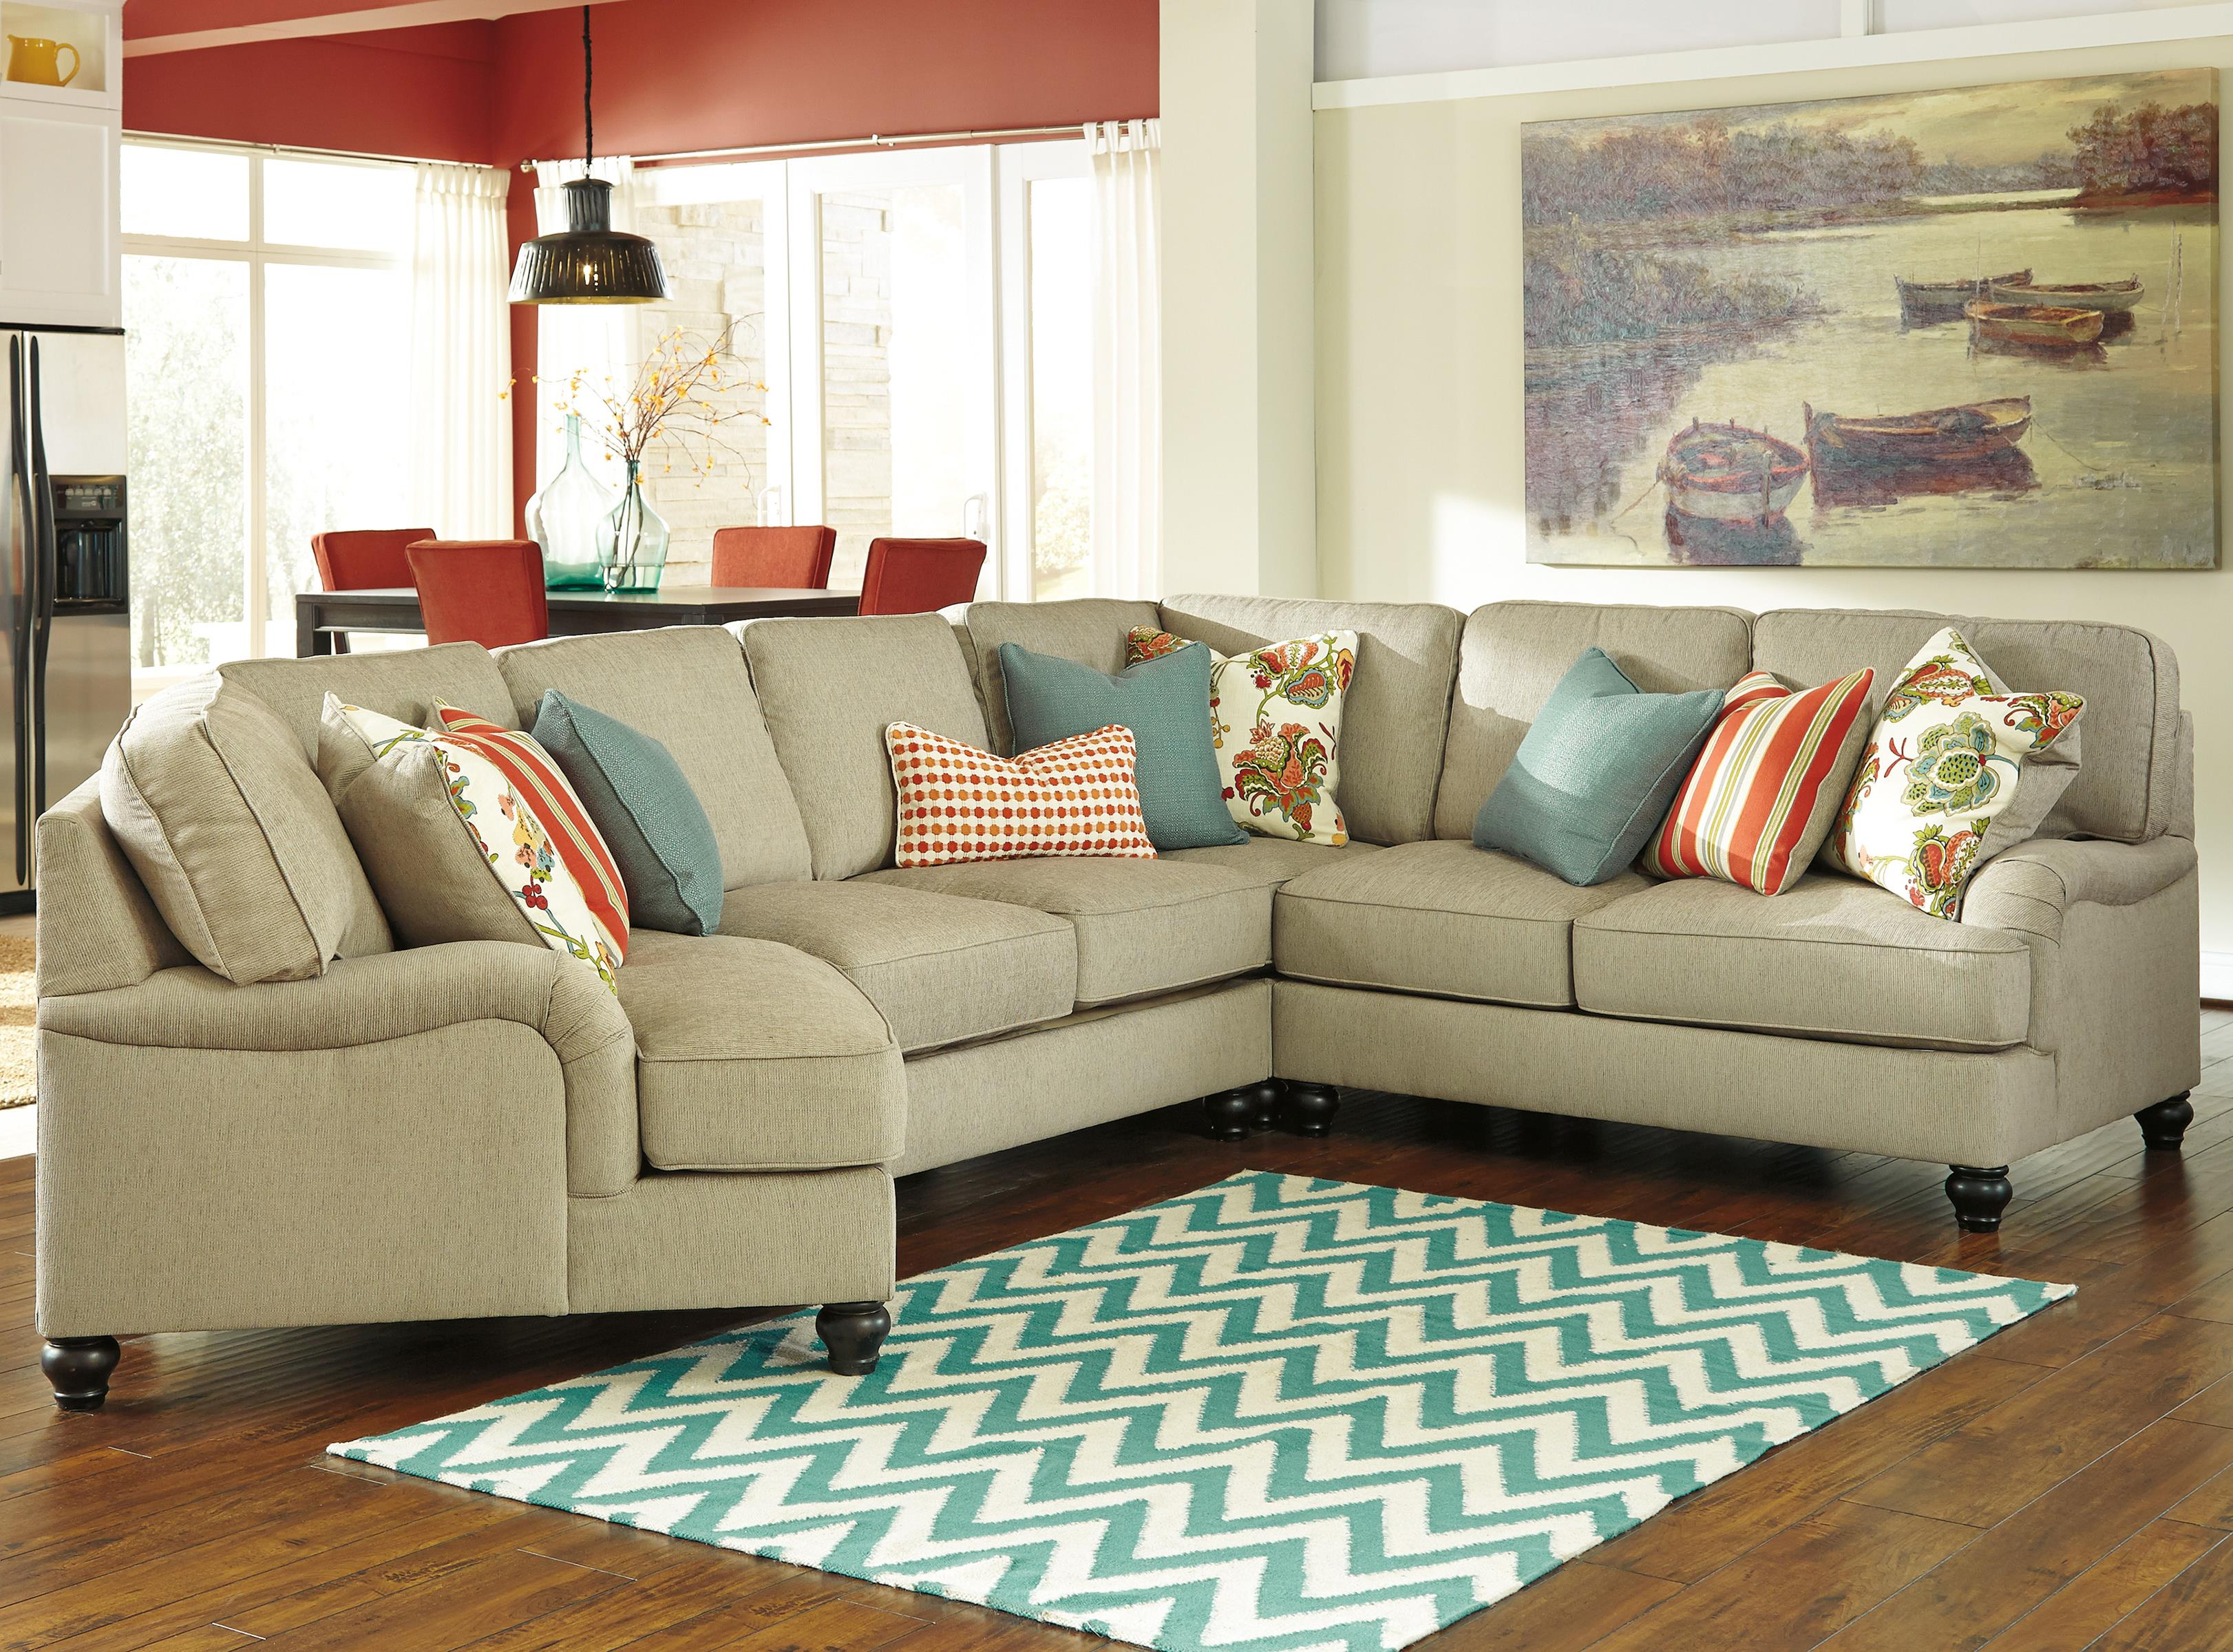 Ashley/Benchcraft Kerridon 4-Piece Sectional with Left Cuddler - Item Number: 2630076+34+77+56